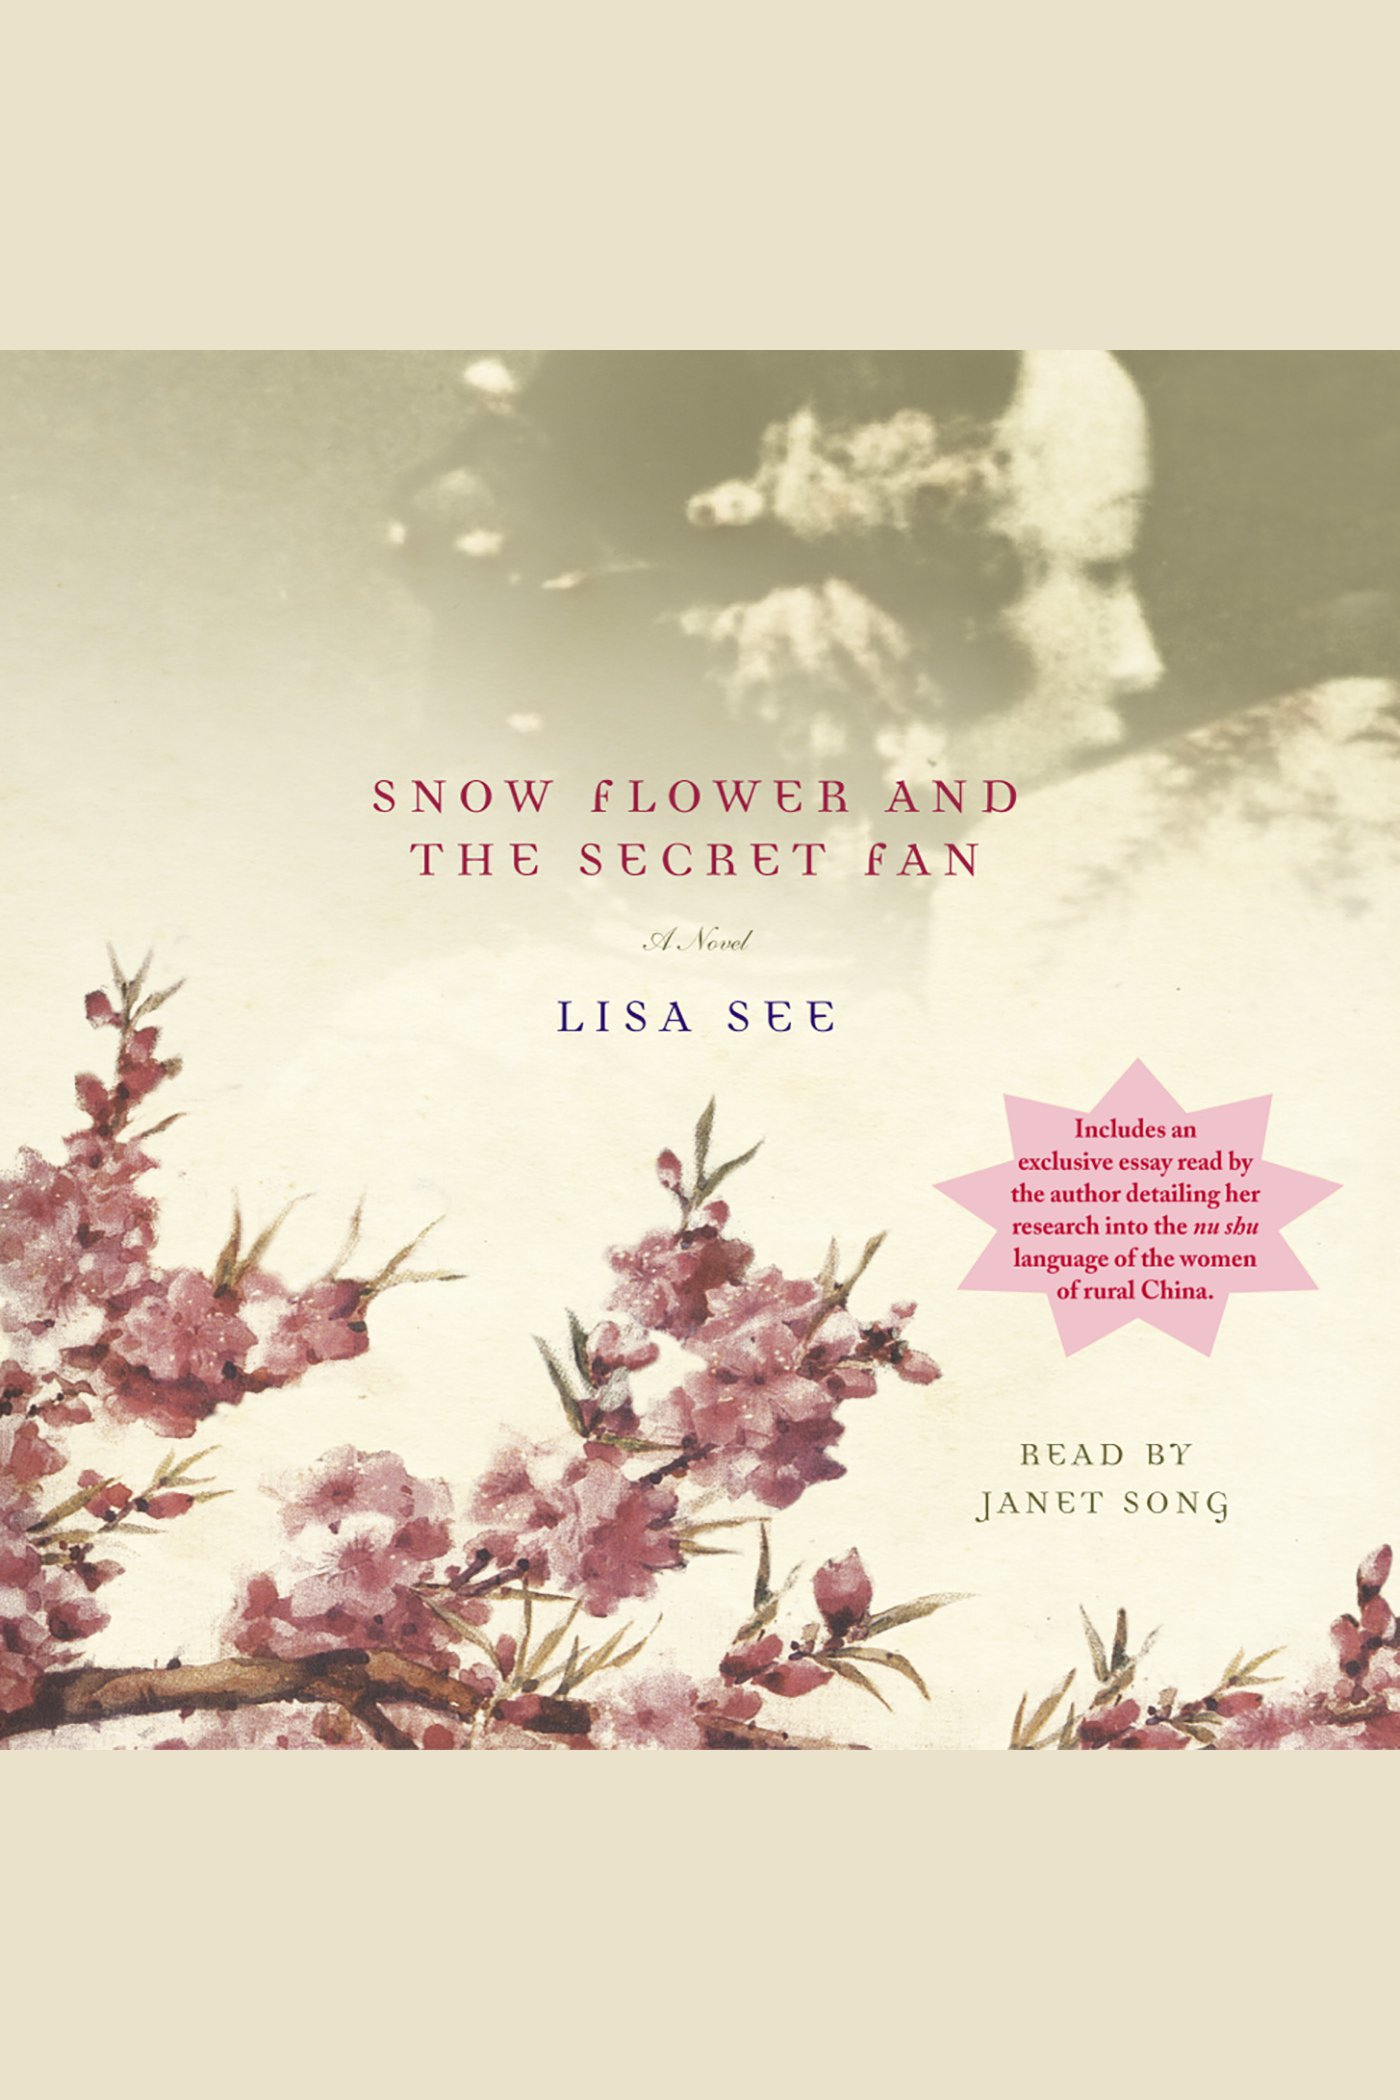 Snow flower and the secret fan cover image